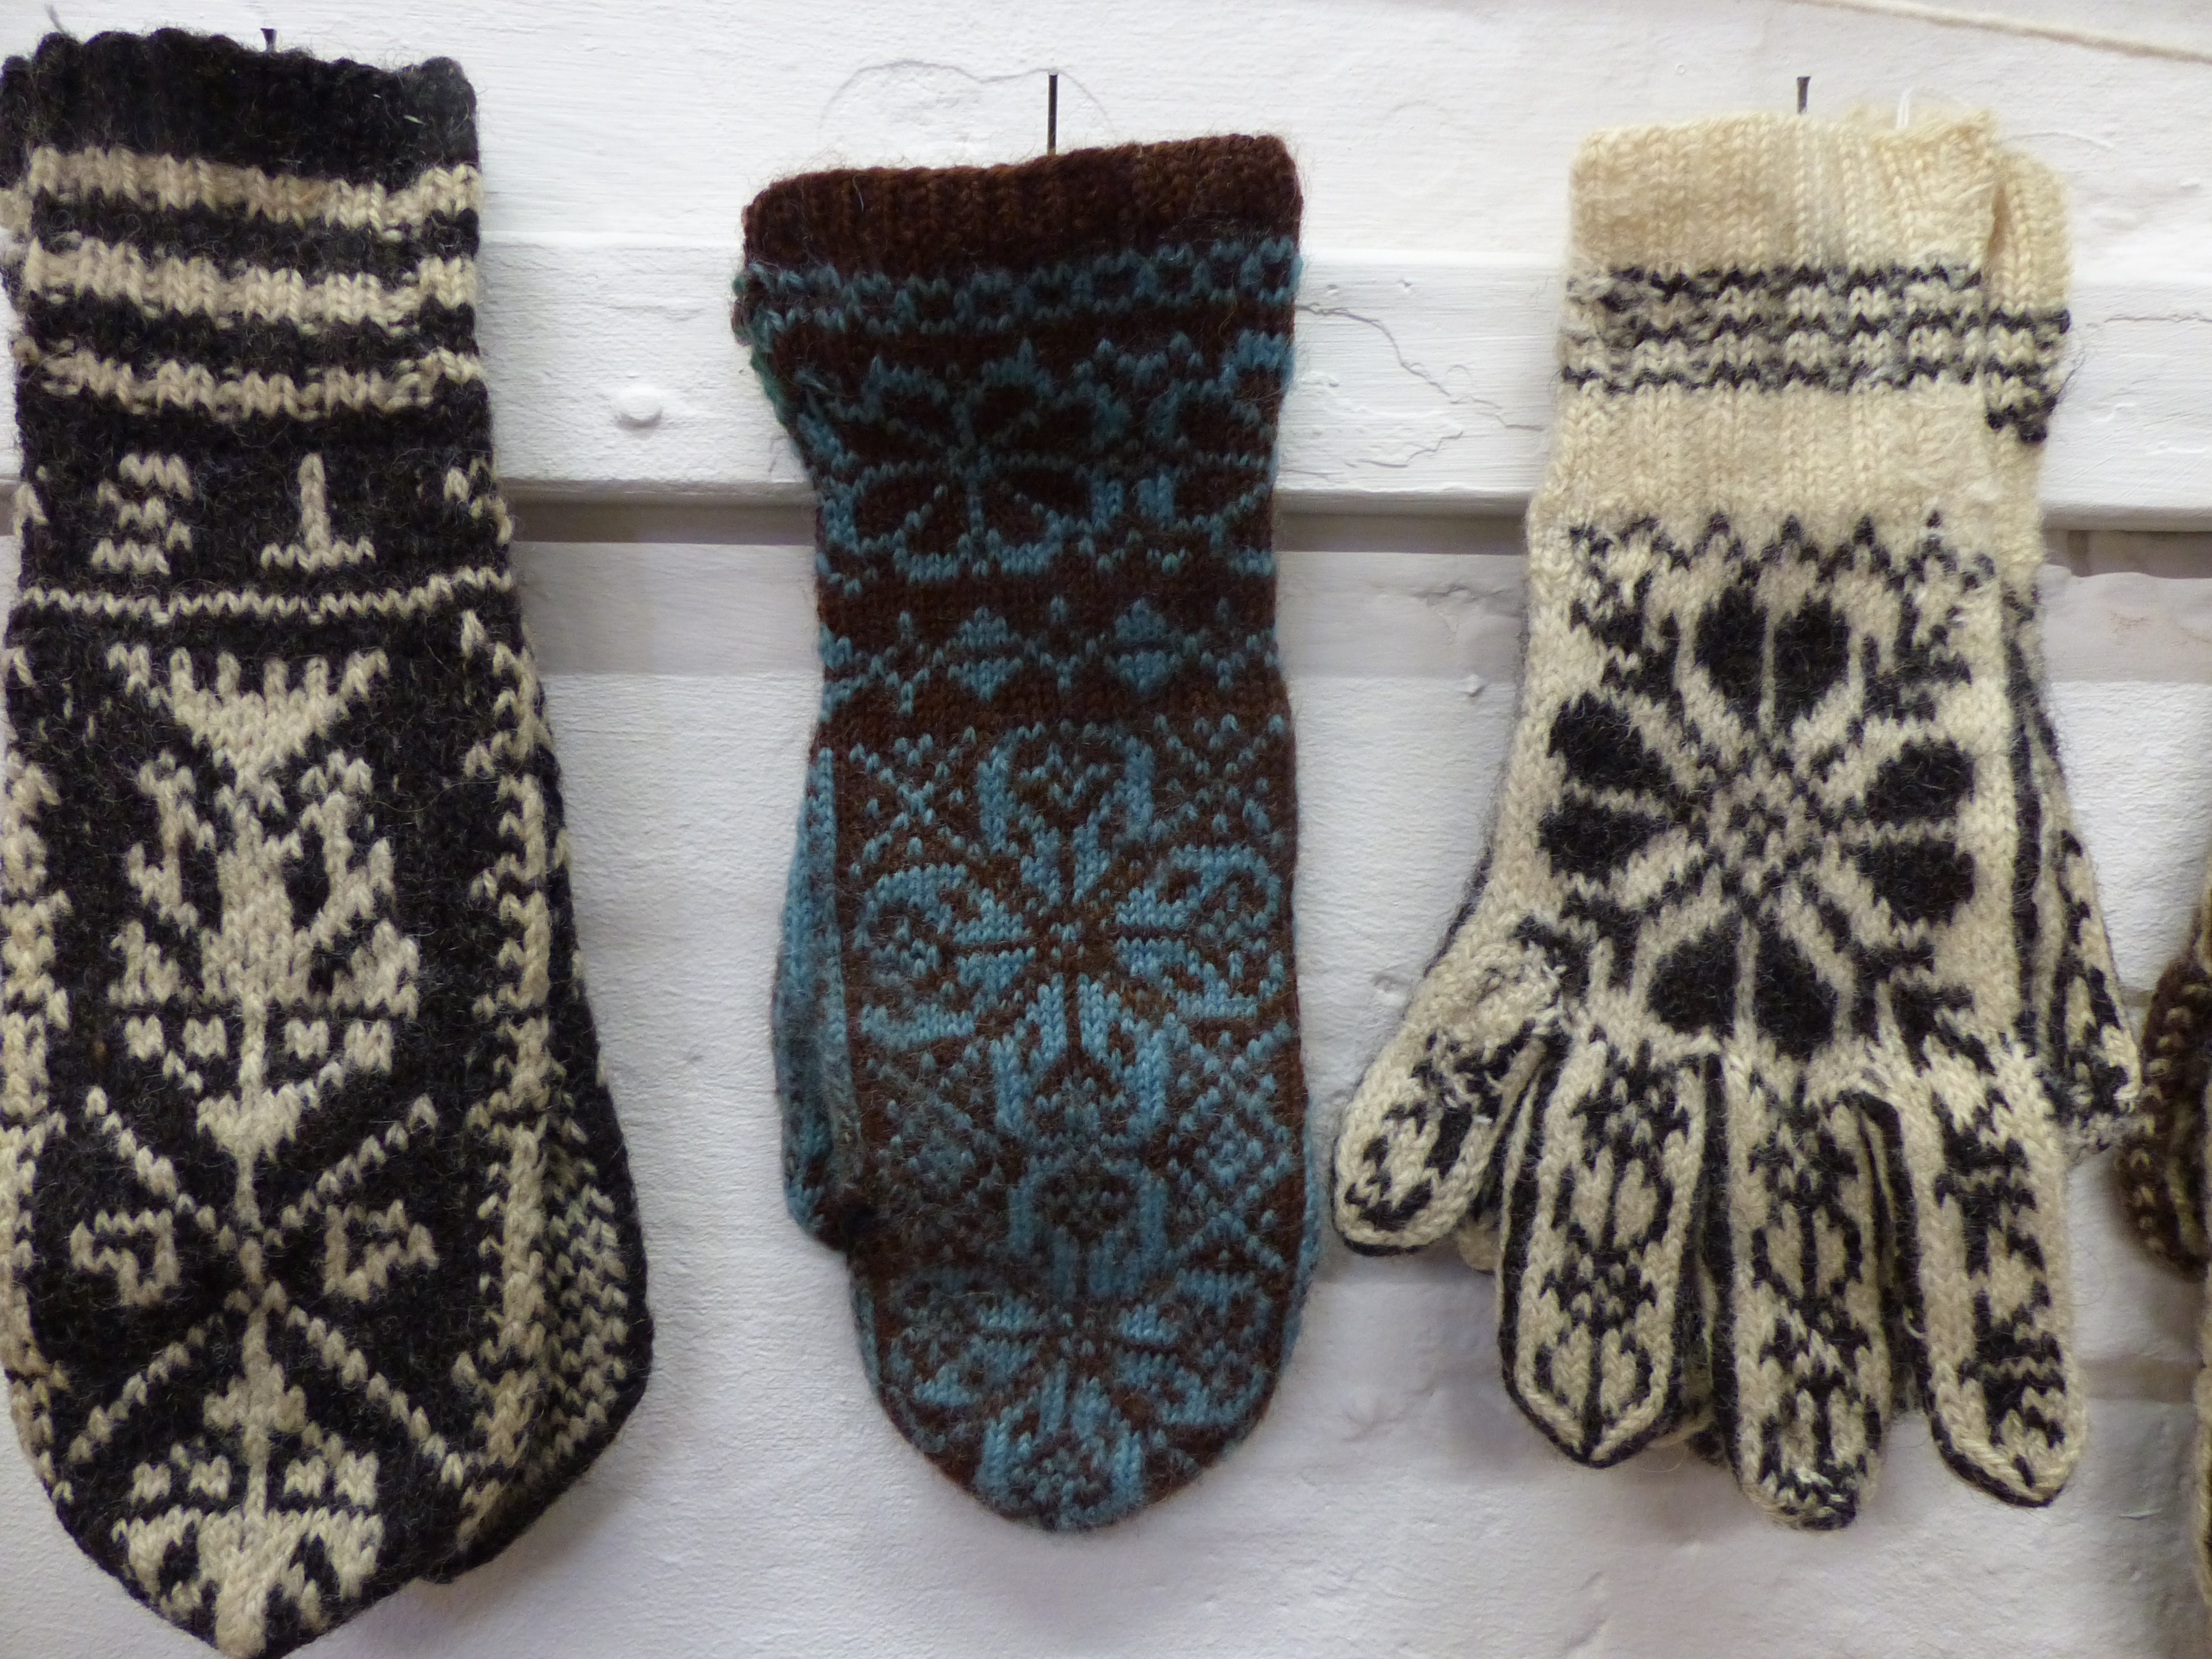 Knitting Pattern For Norwegian Mittens : yarnful Stories and textiles. Pull up a chair and make time for a good yarn?